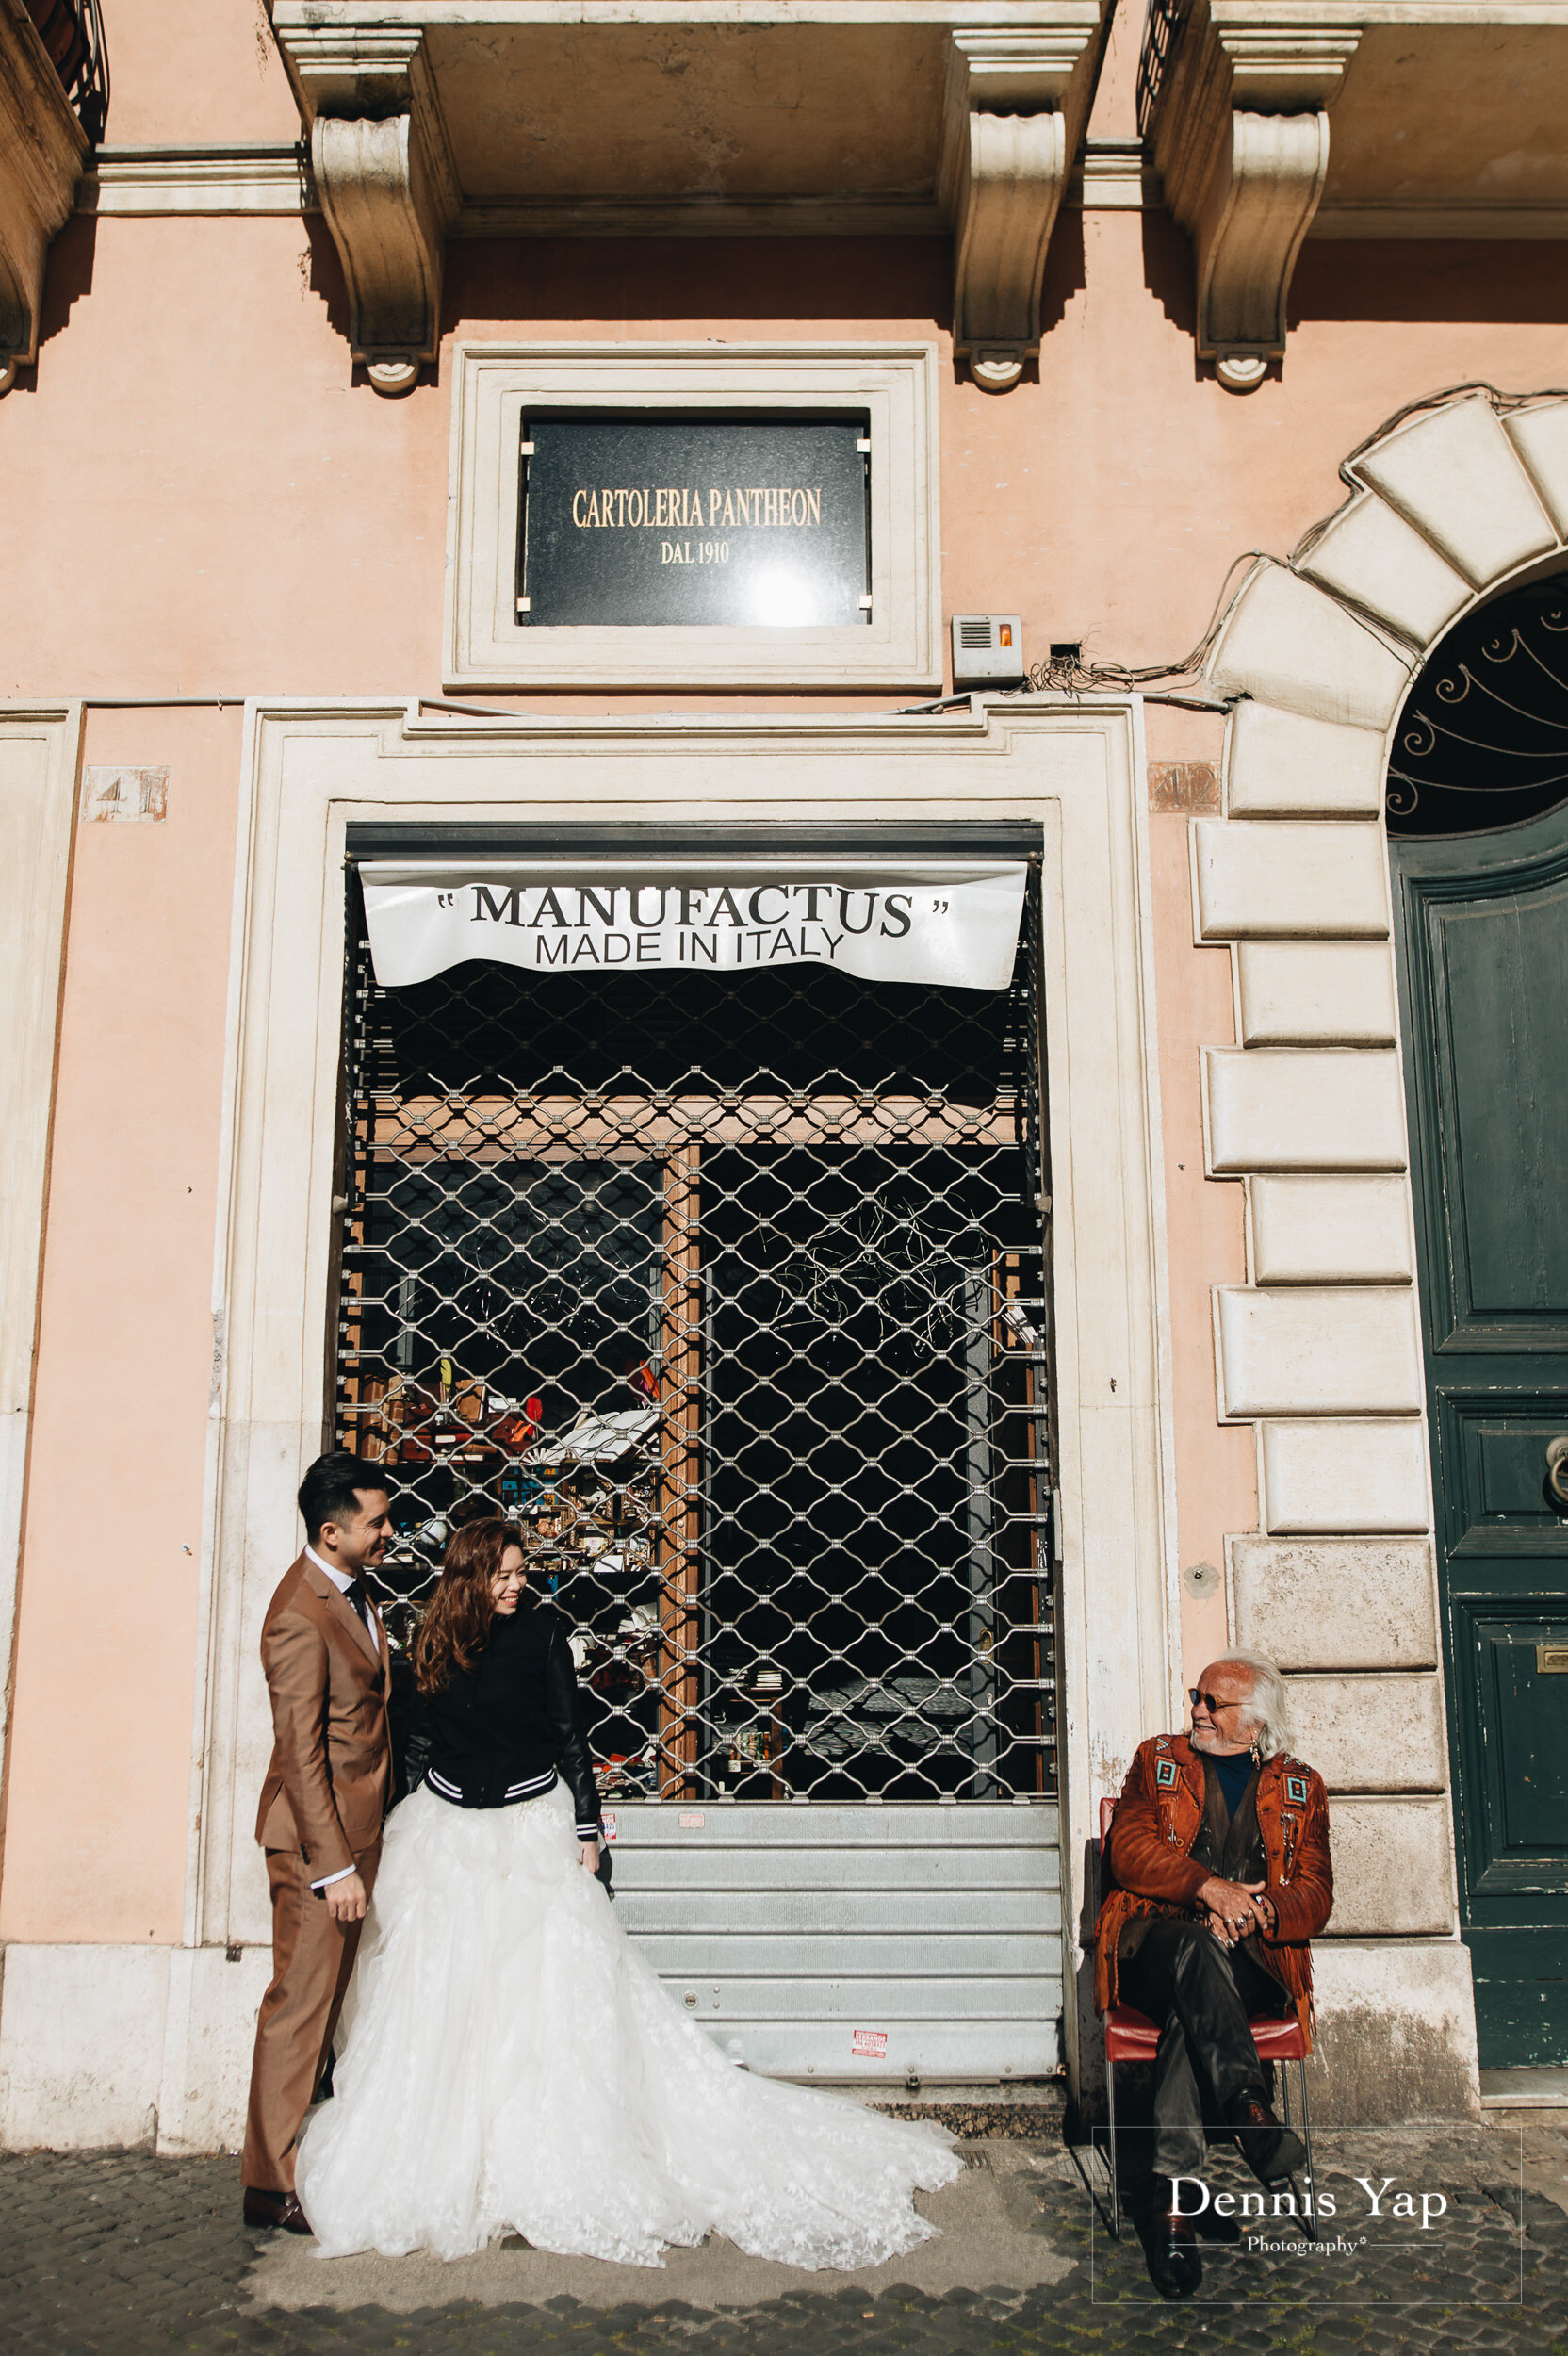 benny alicia pre wedding rome dennis yap photography classic beloved style candid natural-117.jpg